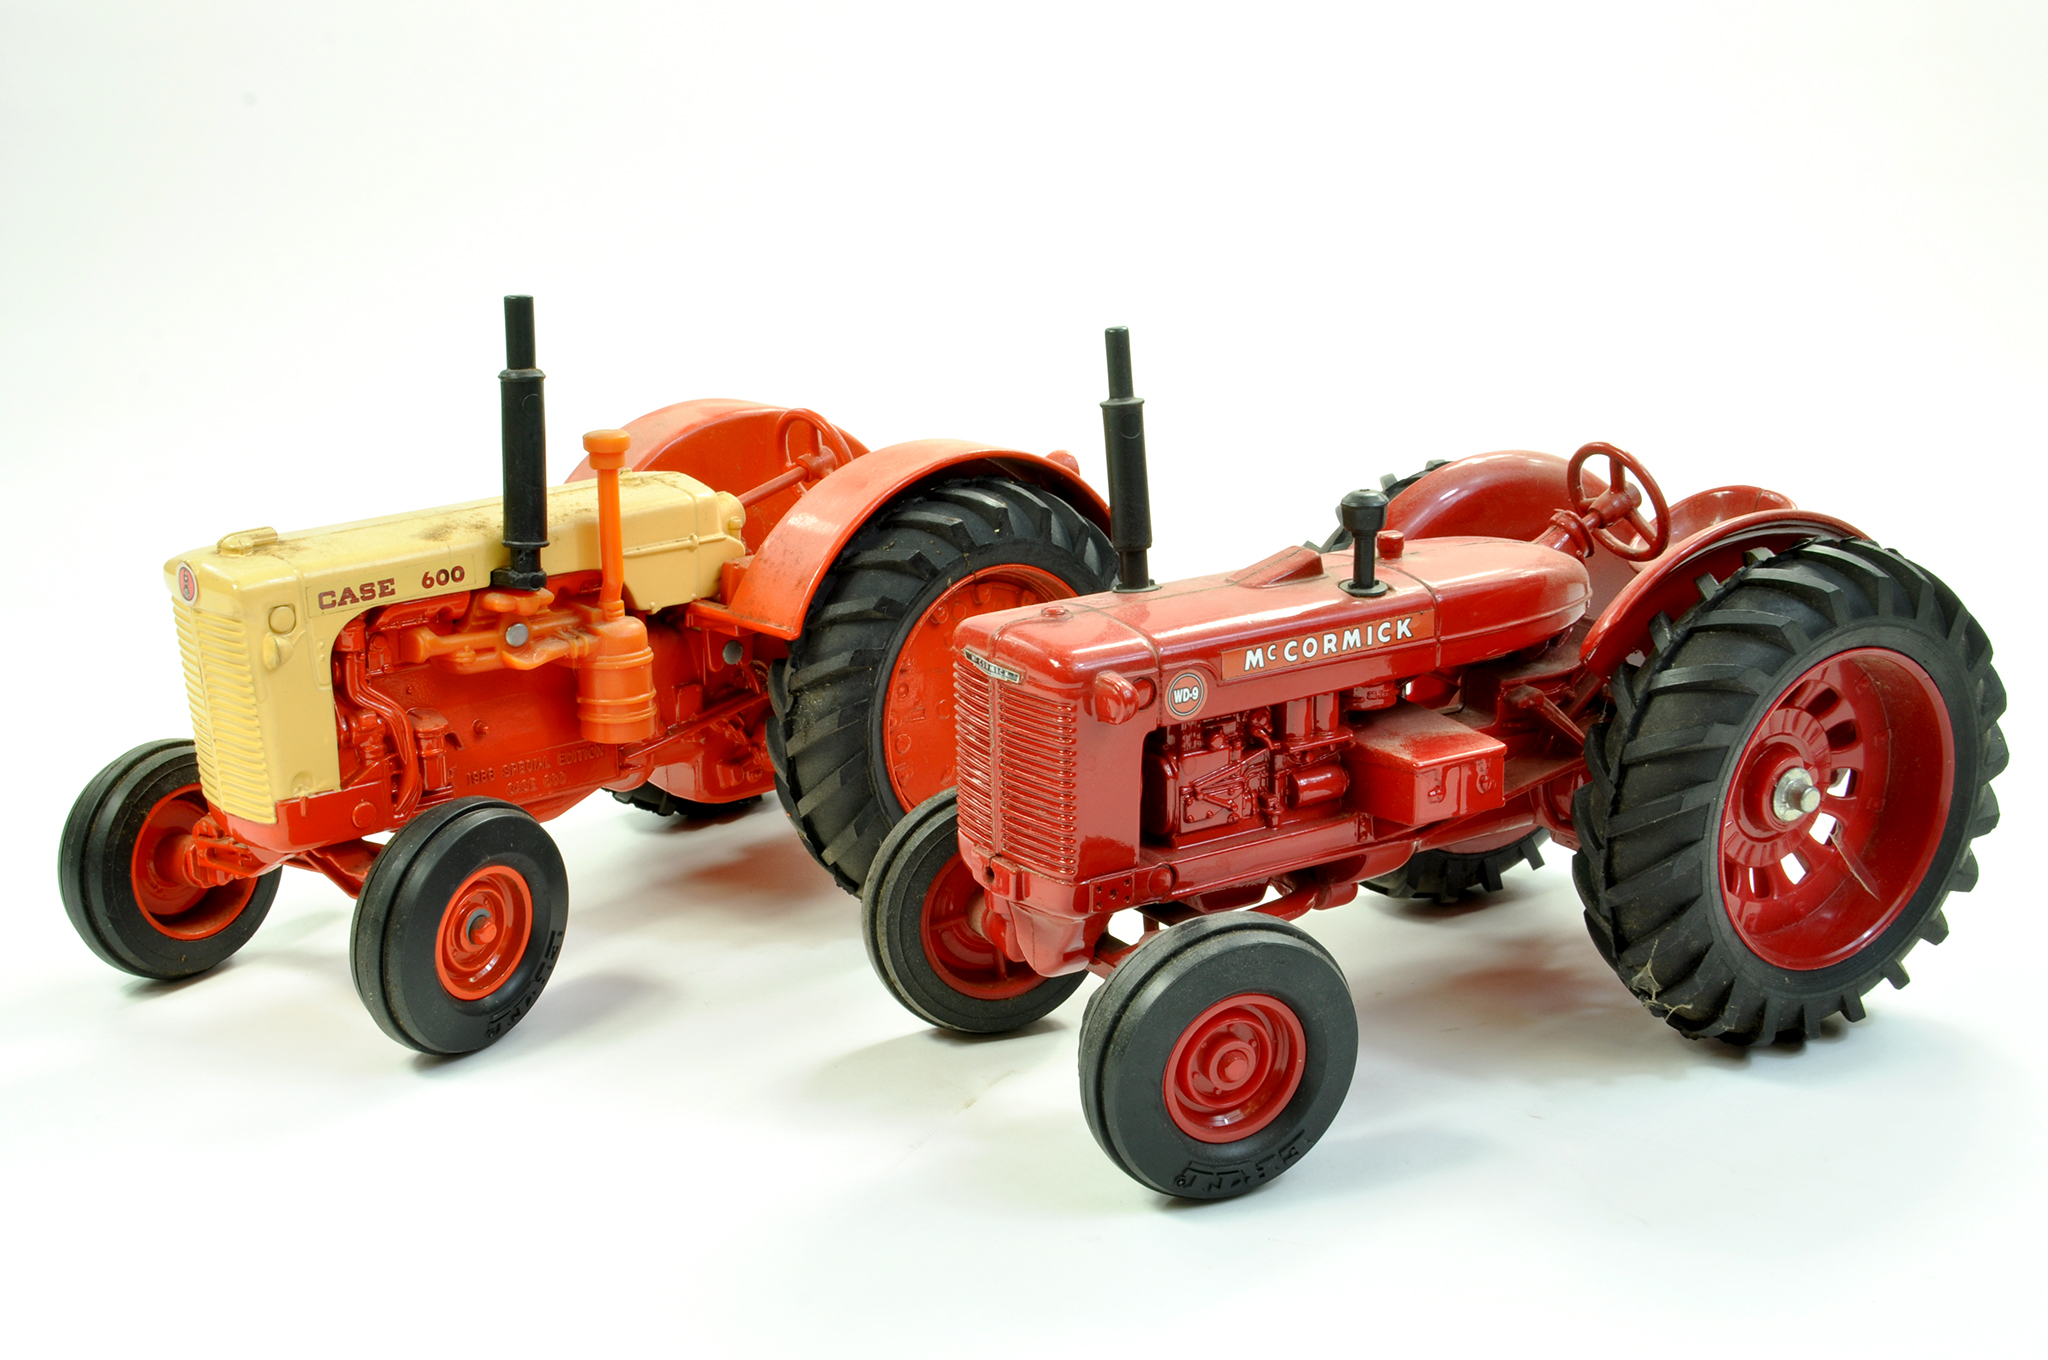 Lot 7 - Ertl 1/16 diecast farm issue duo comprising Case 600 Tractor plus McCormick WD-9. Generally